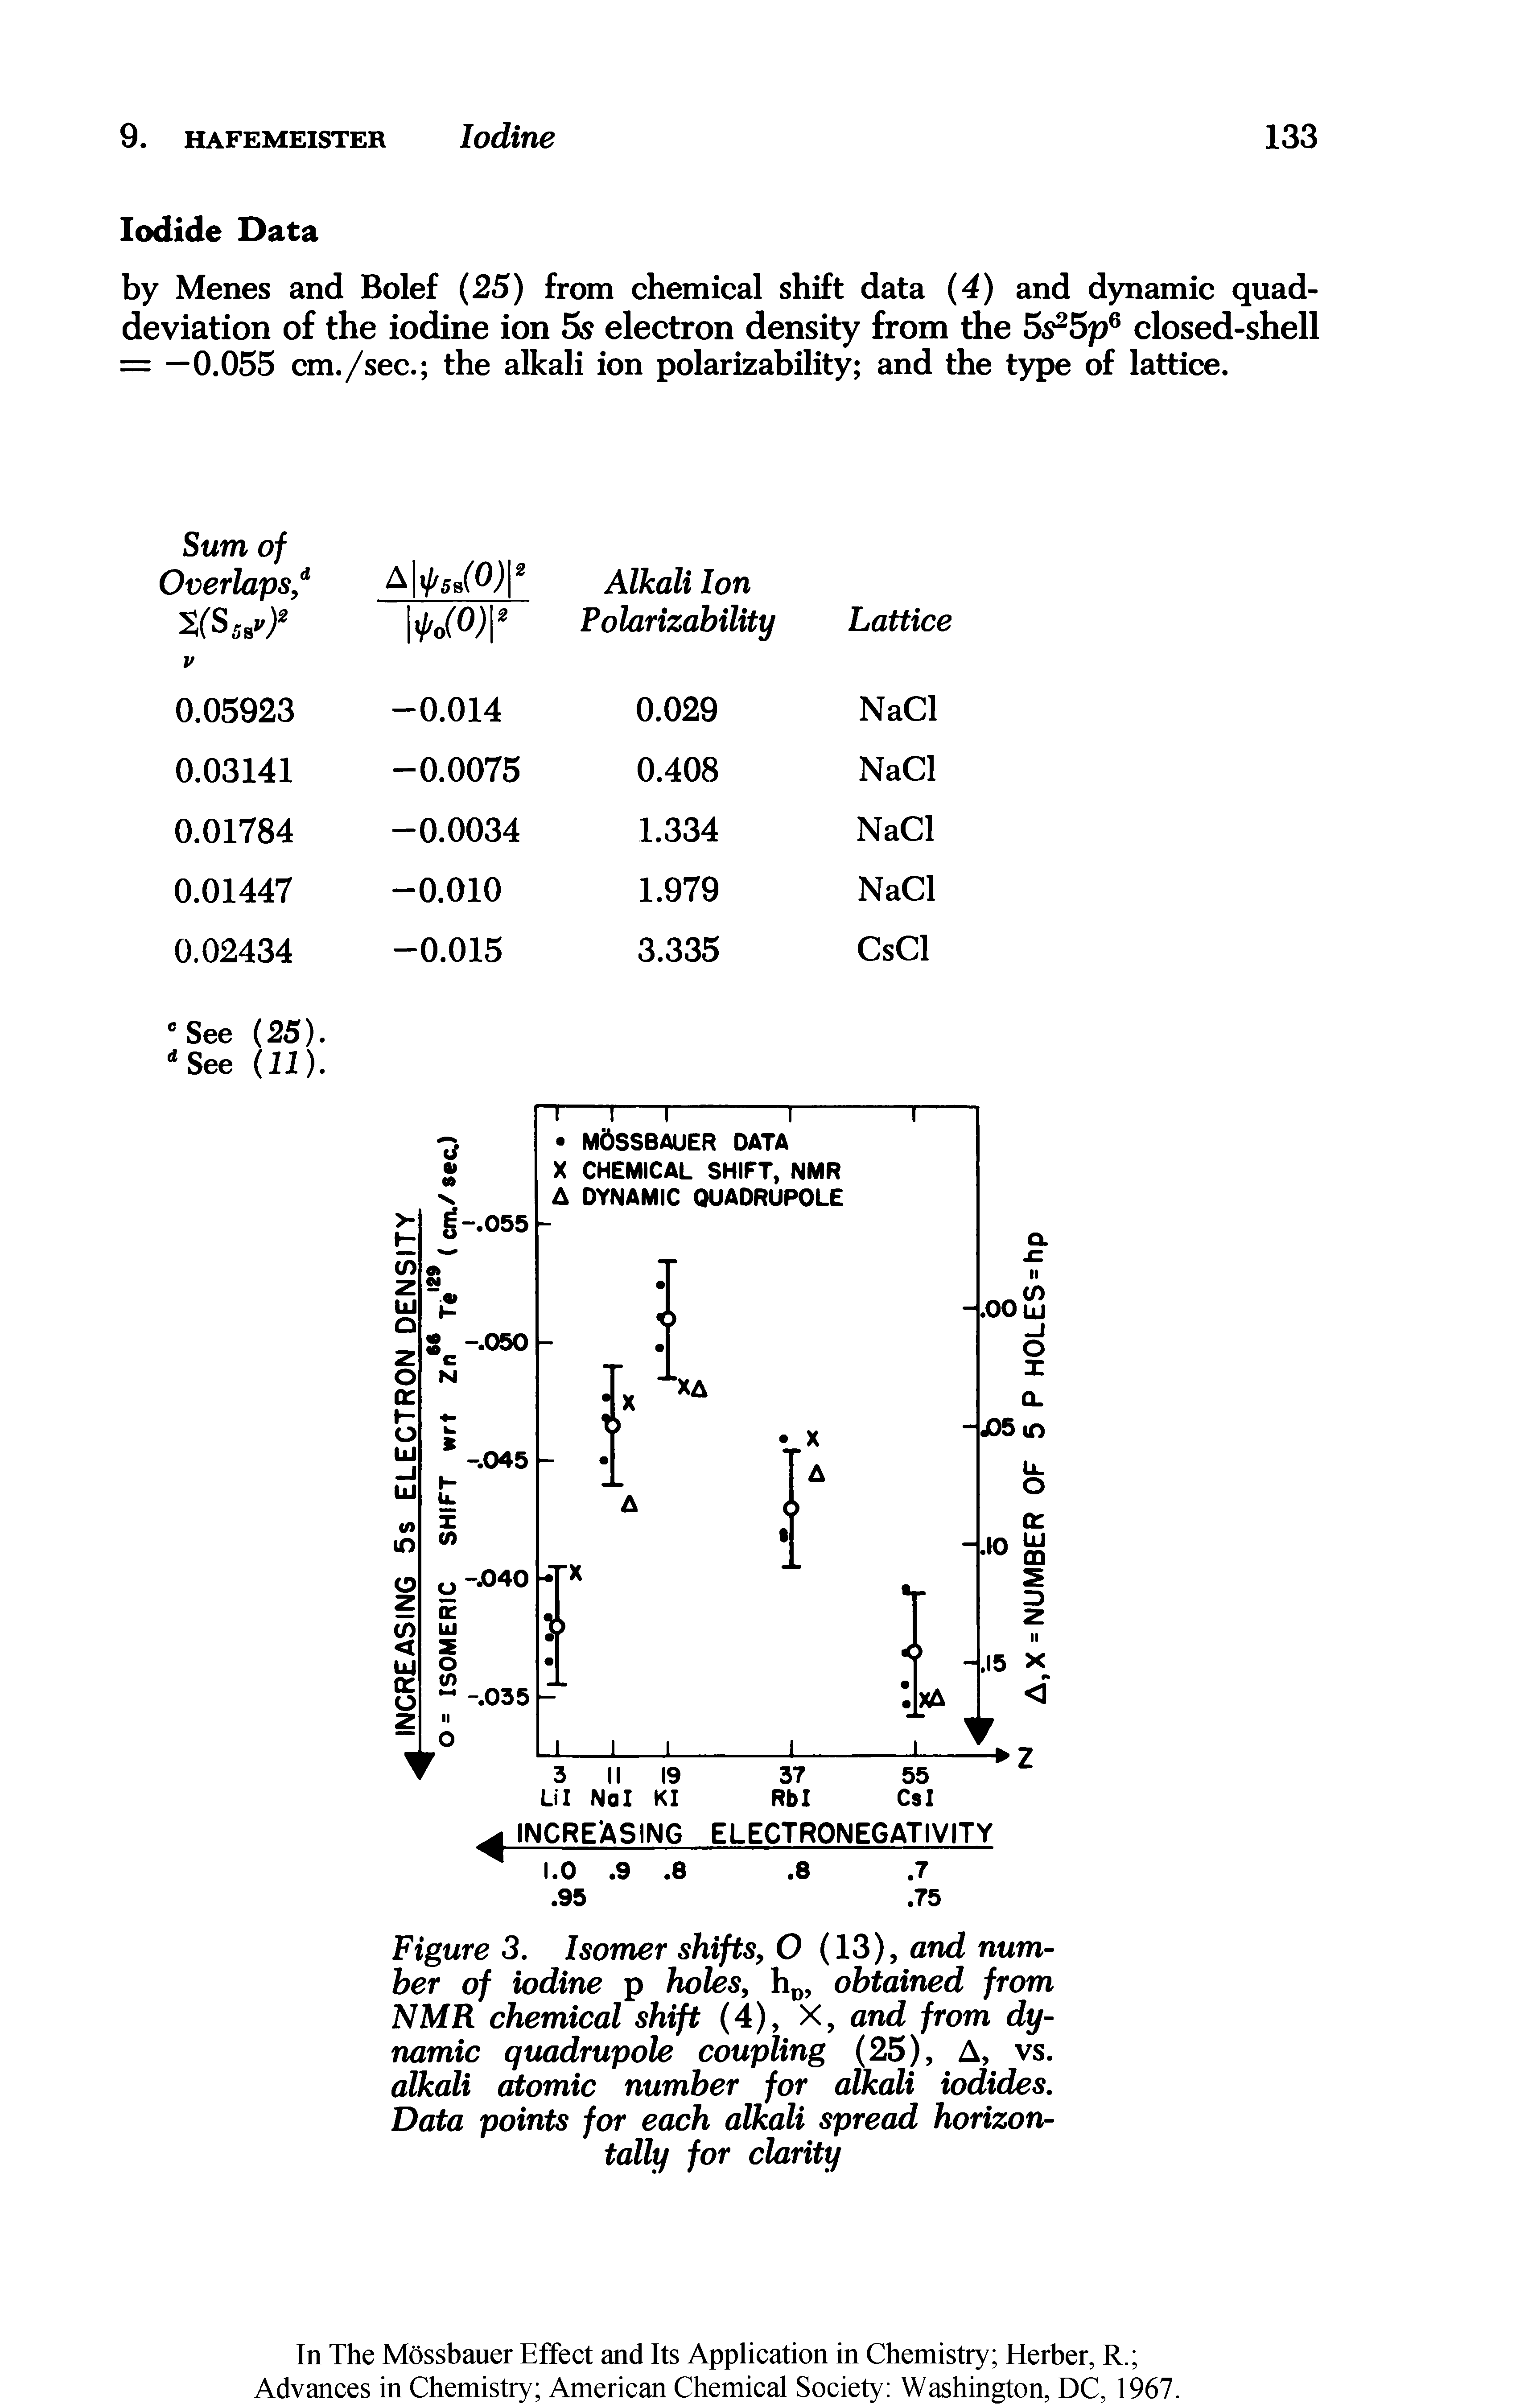 "Figure 3. <a href=""/info/isomer_shift"">Isomer shifts</a>, O (13), and number of iodine p holes, hp, obtained from NMR <a href=""/info/chemical_shift"">chemical shift</a> (4), X, and <a href=""/info/from_dynamics"">from dynamic</a> <a href=""/info/quadrupole_coupling"">quadrupole coupling</a> (25), A, vs. alkali atomic number for <a href=""/info/alkali_iodides"">alkali iodides</a>. <a href=""/info/gel_point_data"">Data points</a> for each alkali spread horizontally for clarity"